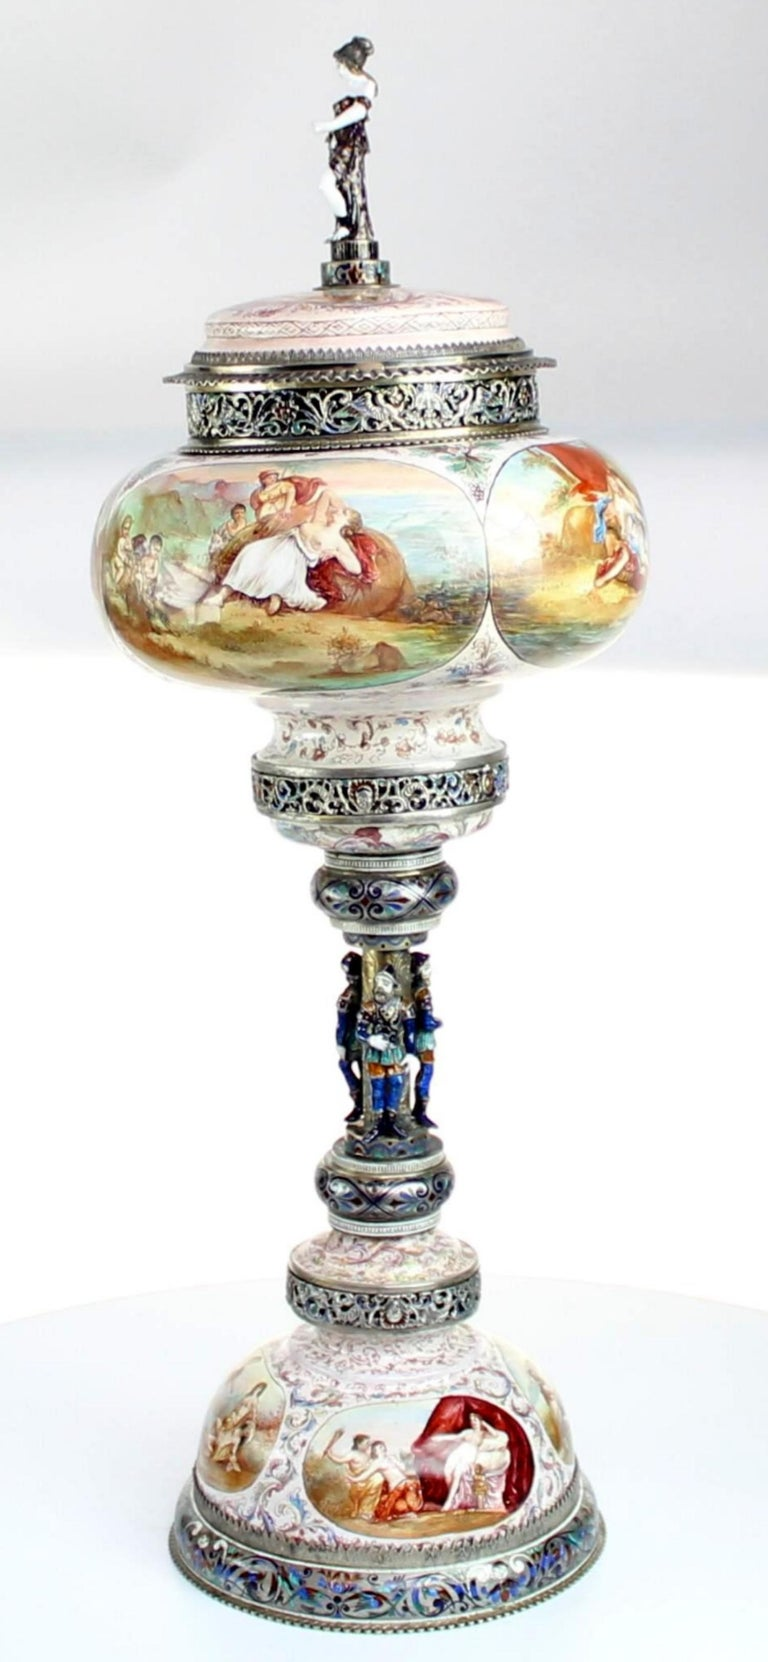 Magnificent Large Silver and Viennese Enamel Cup and Cover by Hermann Bohm, 1880 In Good Condition For Sale In New York, NY